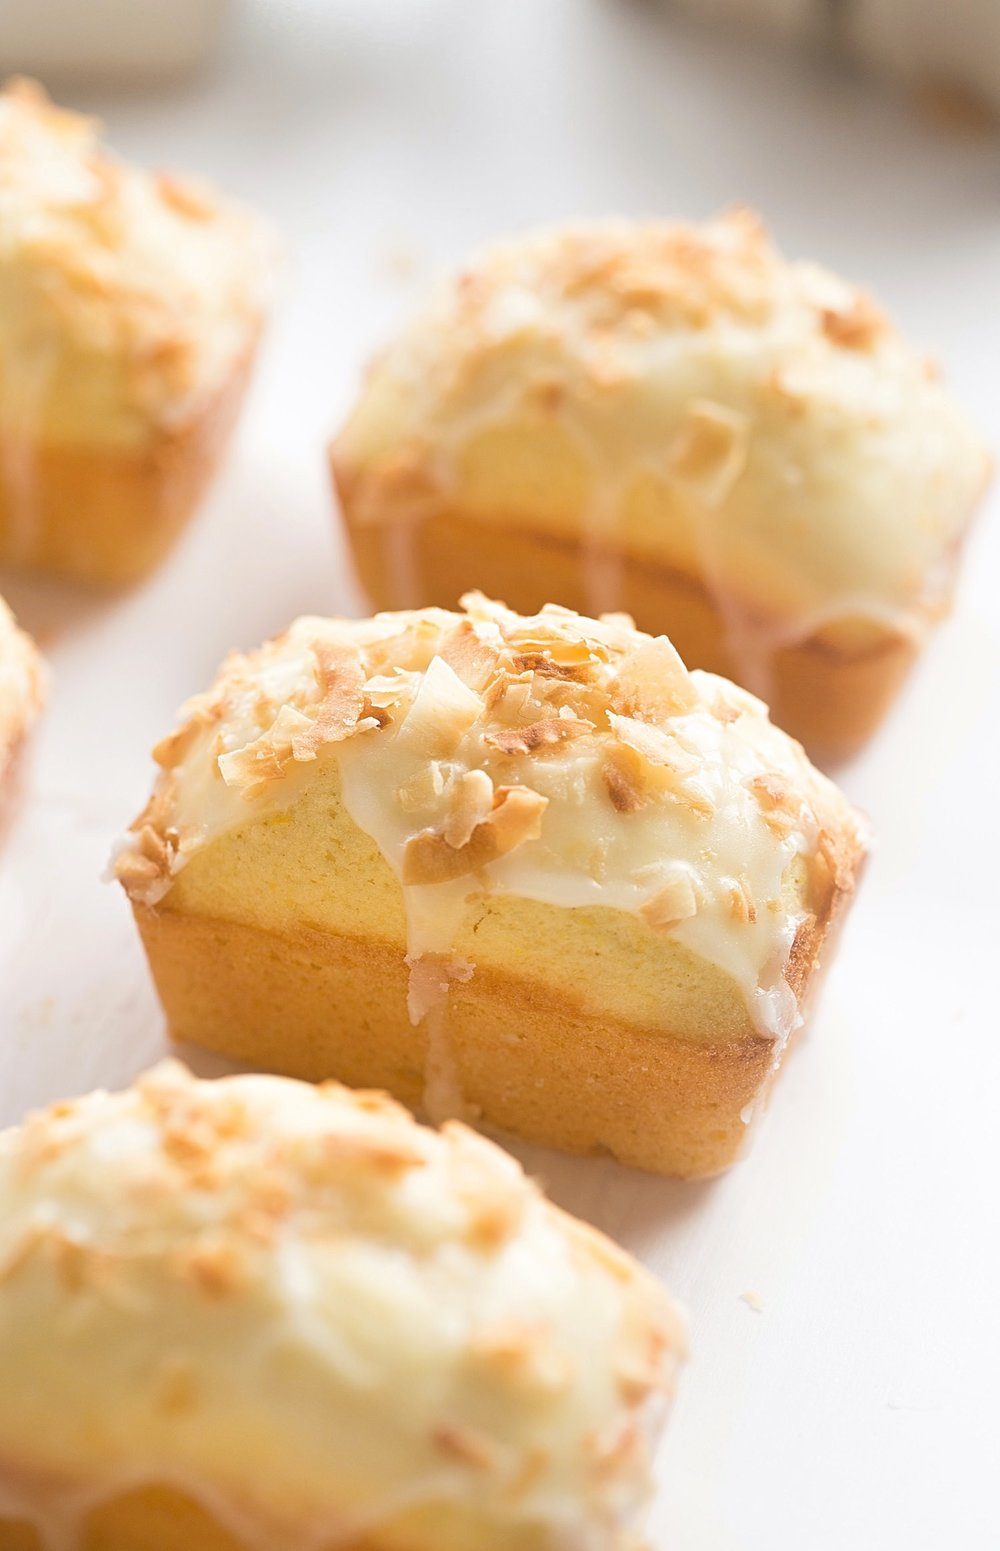 Mini Lemon Coconut Loaf Cakes: easy, soft, fluffy, loaf cakes full of lemon flavor and coconut flakes with a glossy, tangy glaze. | TrufflesandTrends.com